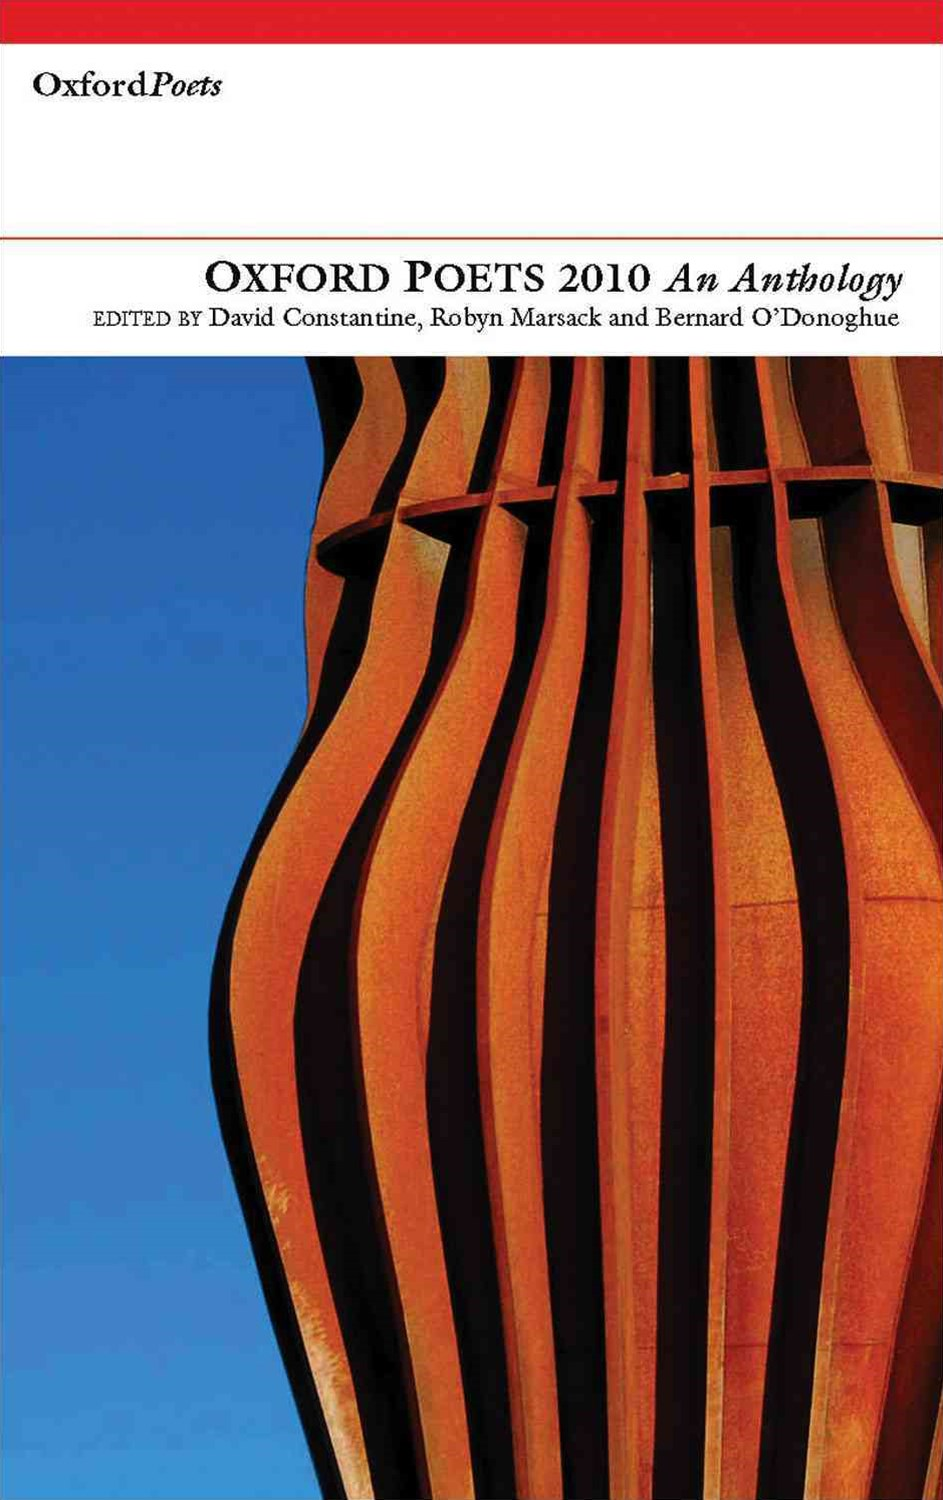 Oxford Poets: An Anthology: 2010